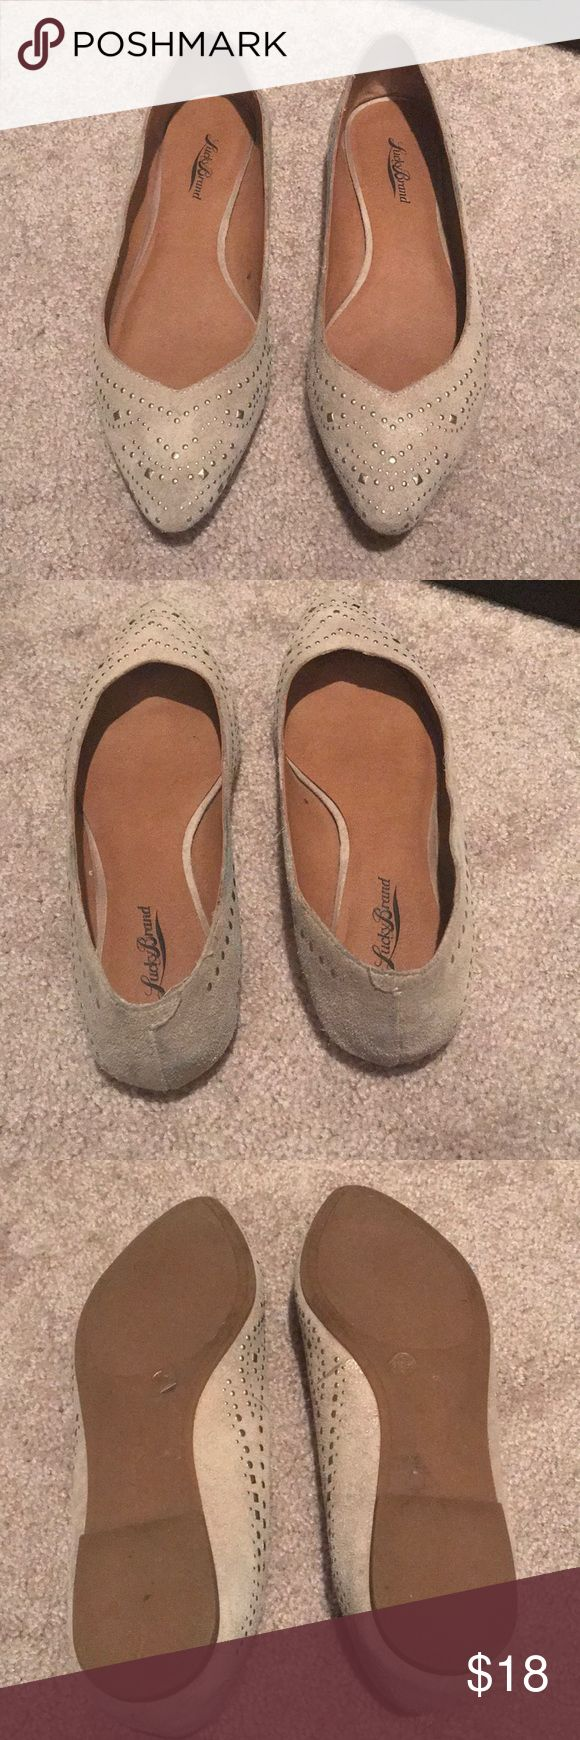 Lucky Brand flats Leather upper. Man made lining. Great condition. Smoke free home Lucky Brand Shoes Flats & Loafers